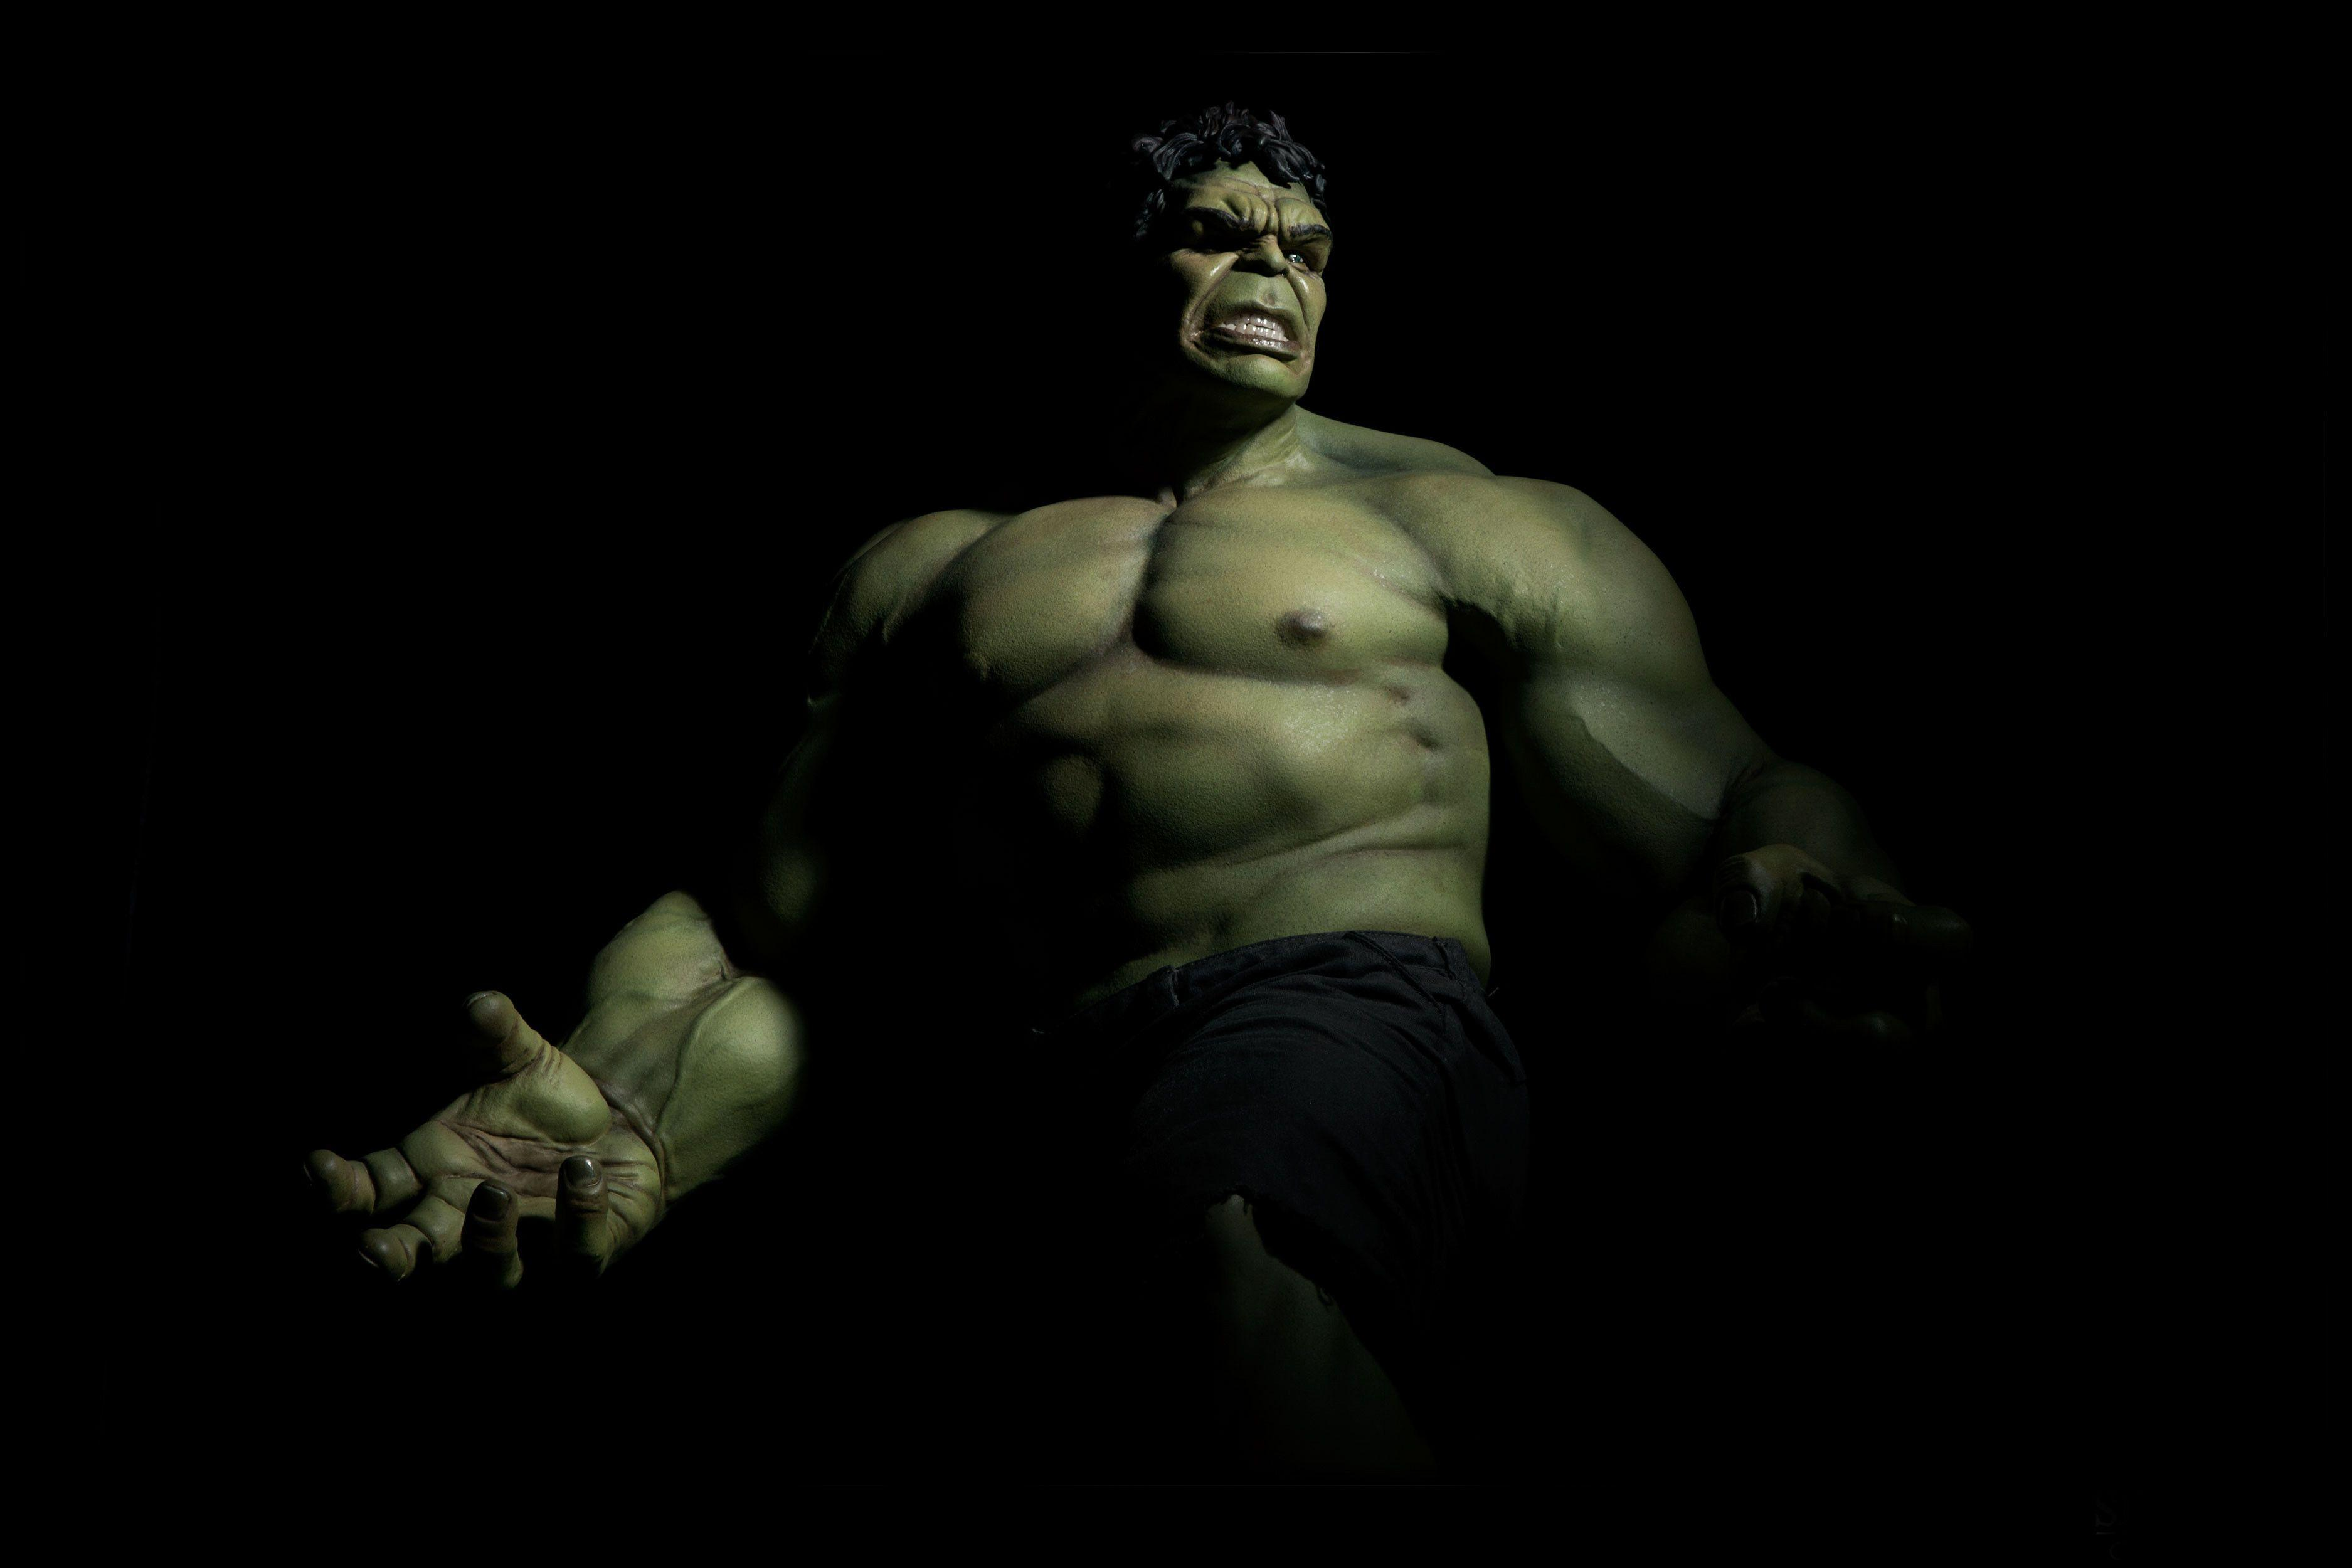 Hulk Computer Wallpapers, Desktop Backgrounds 3750x2500 Id: 418275